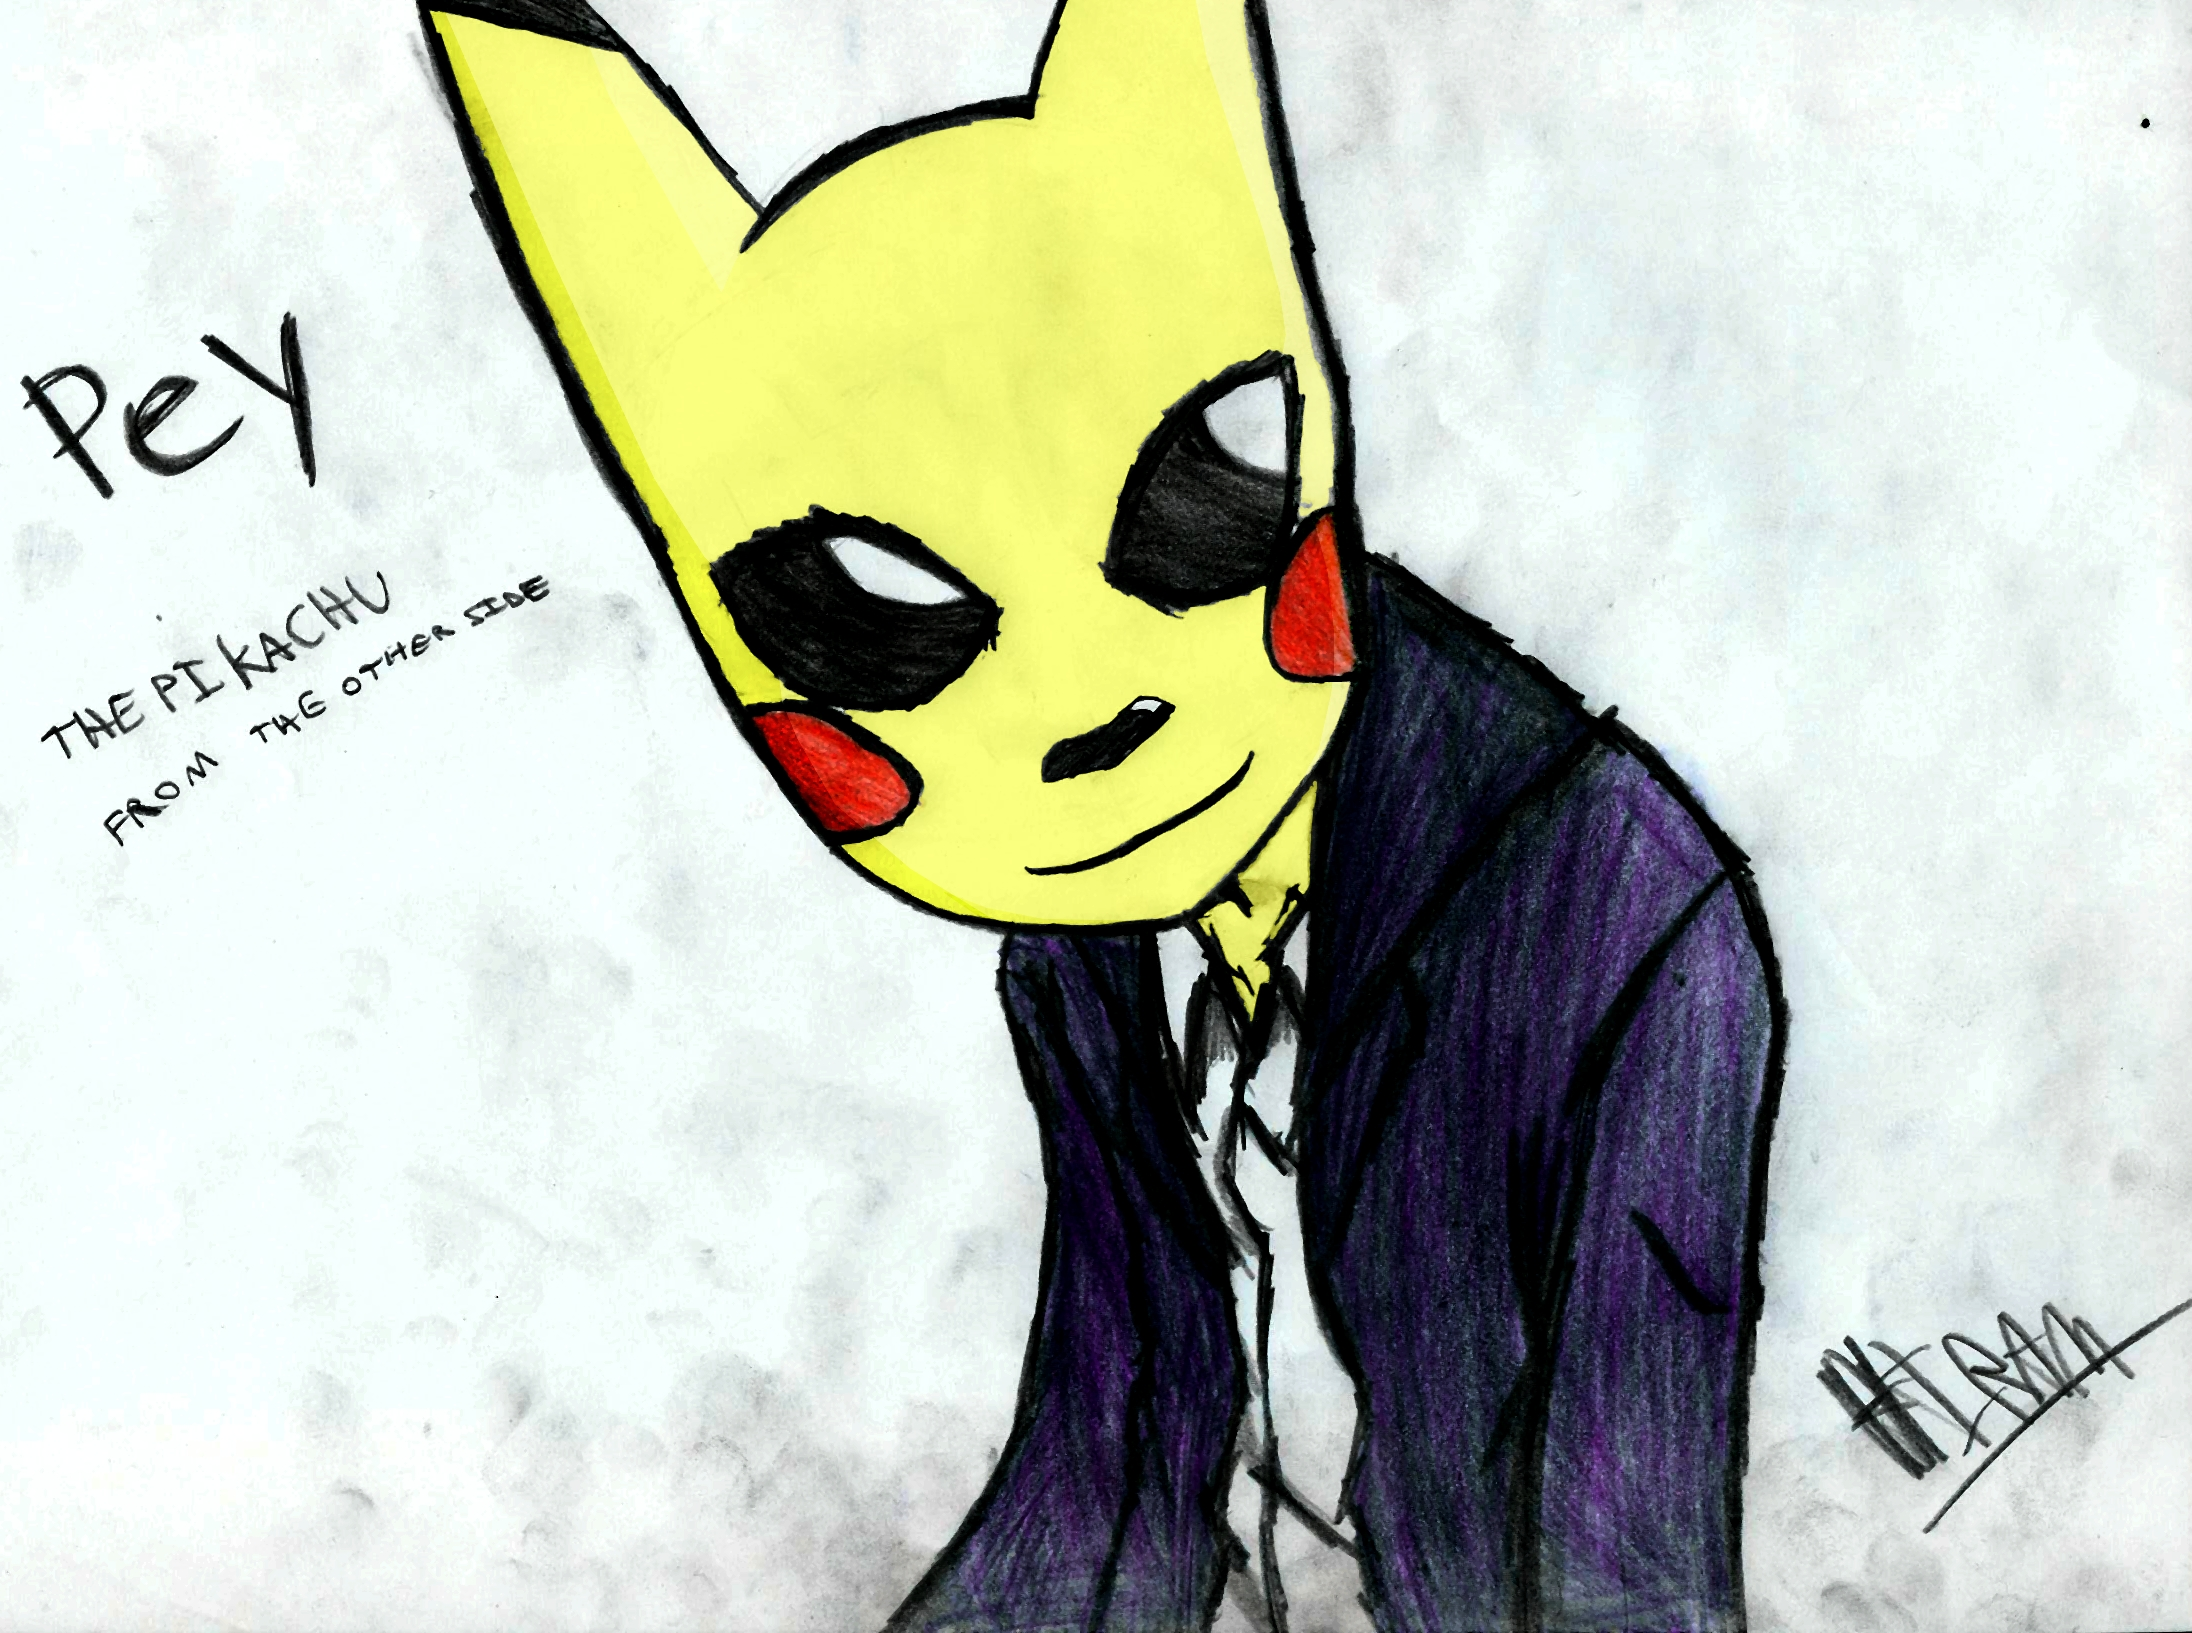 the other pikachu